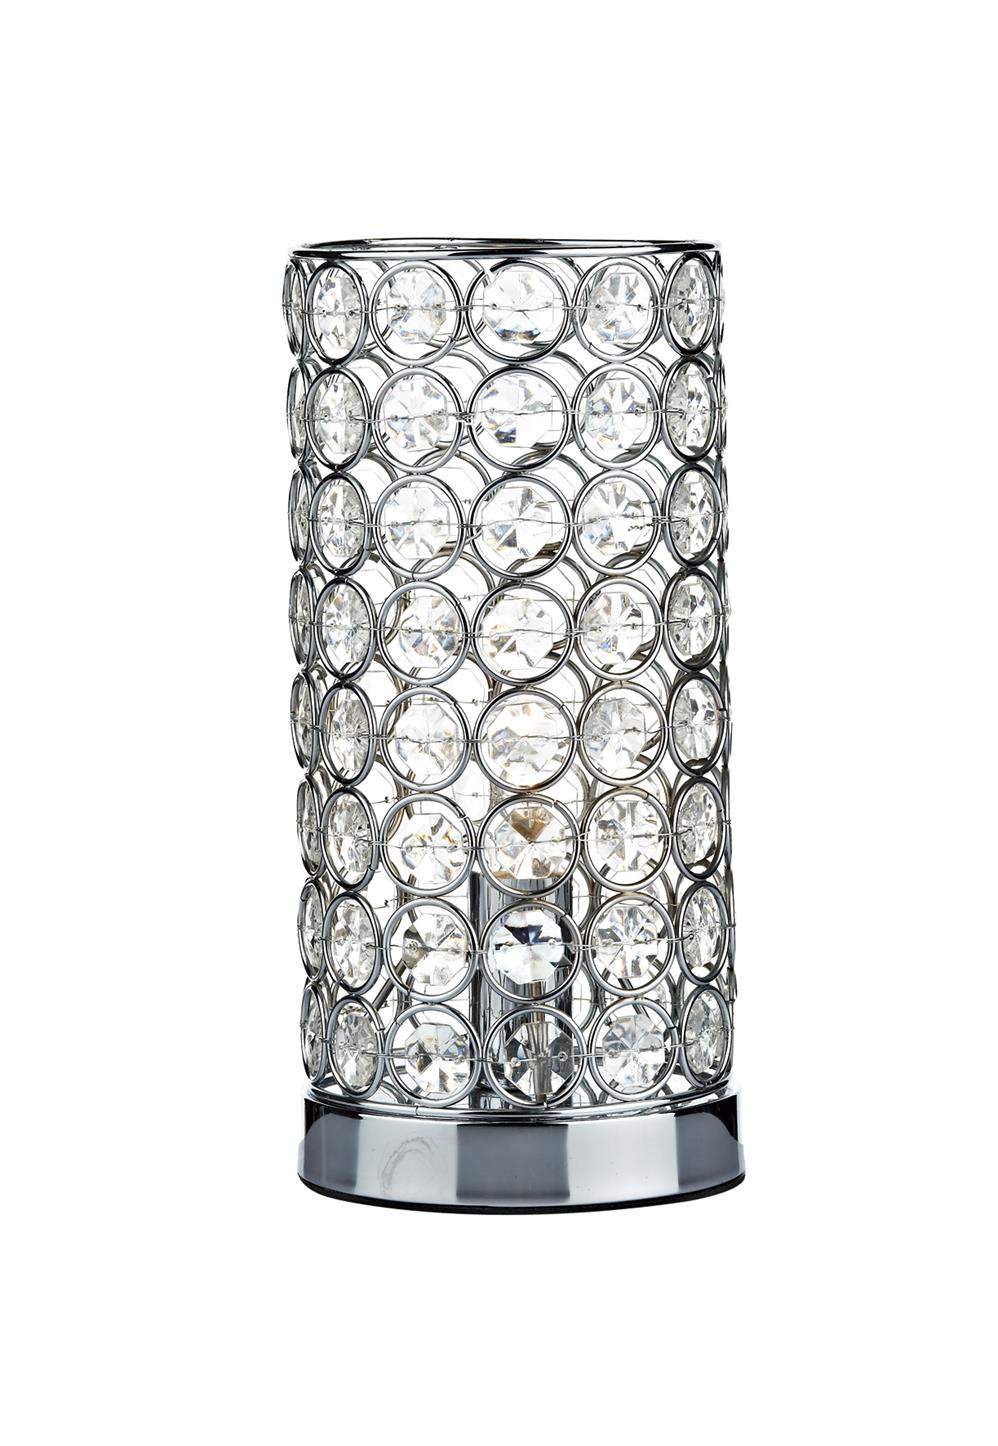 Dar FRO4250 Frost Touch Table Lamp in Chrome